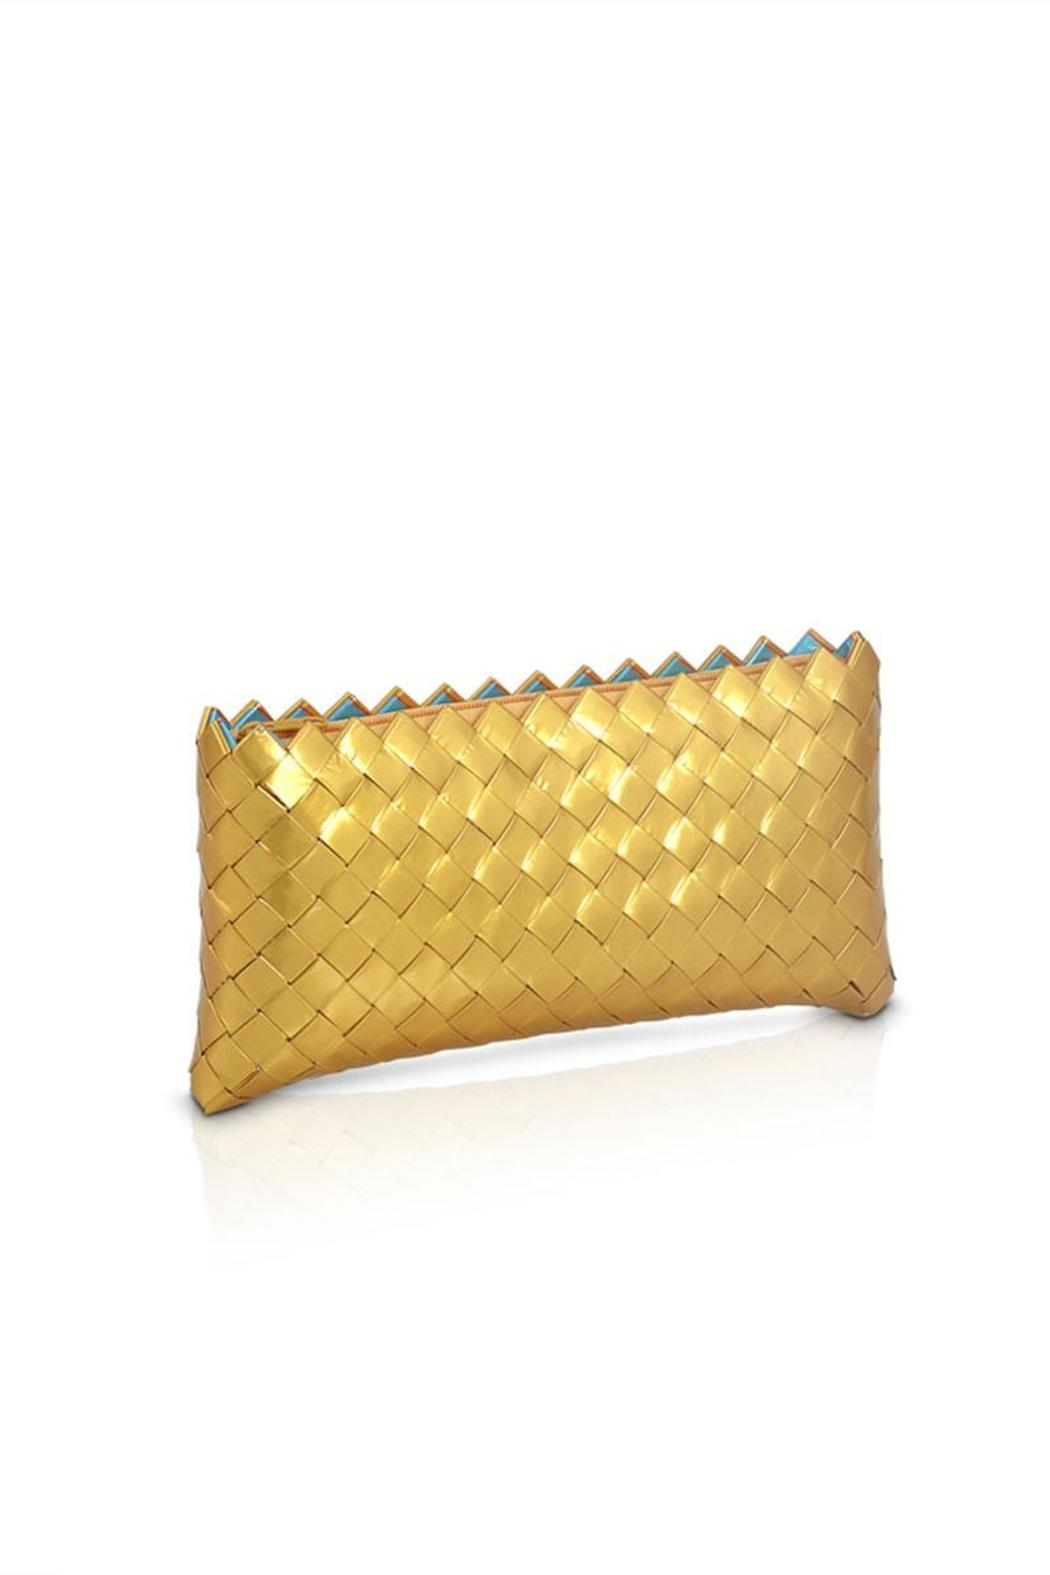 CeReSo Recycled Candywrapper Clutch - Main Image